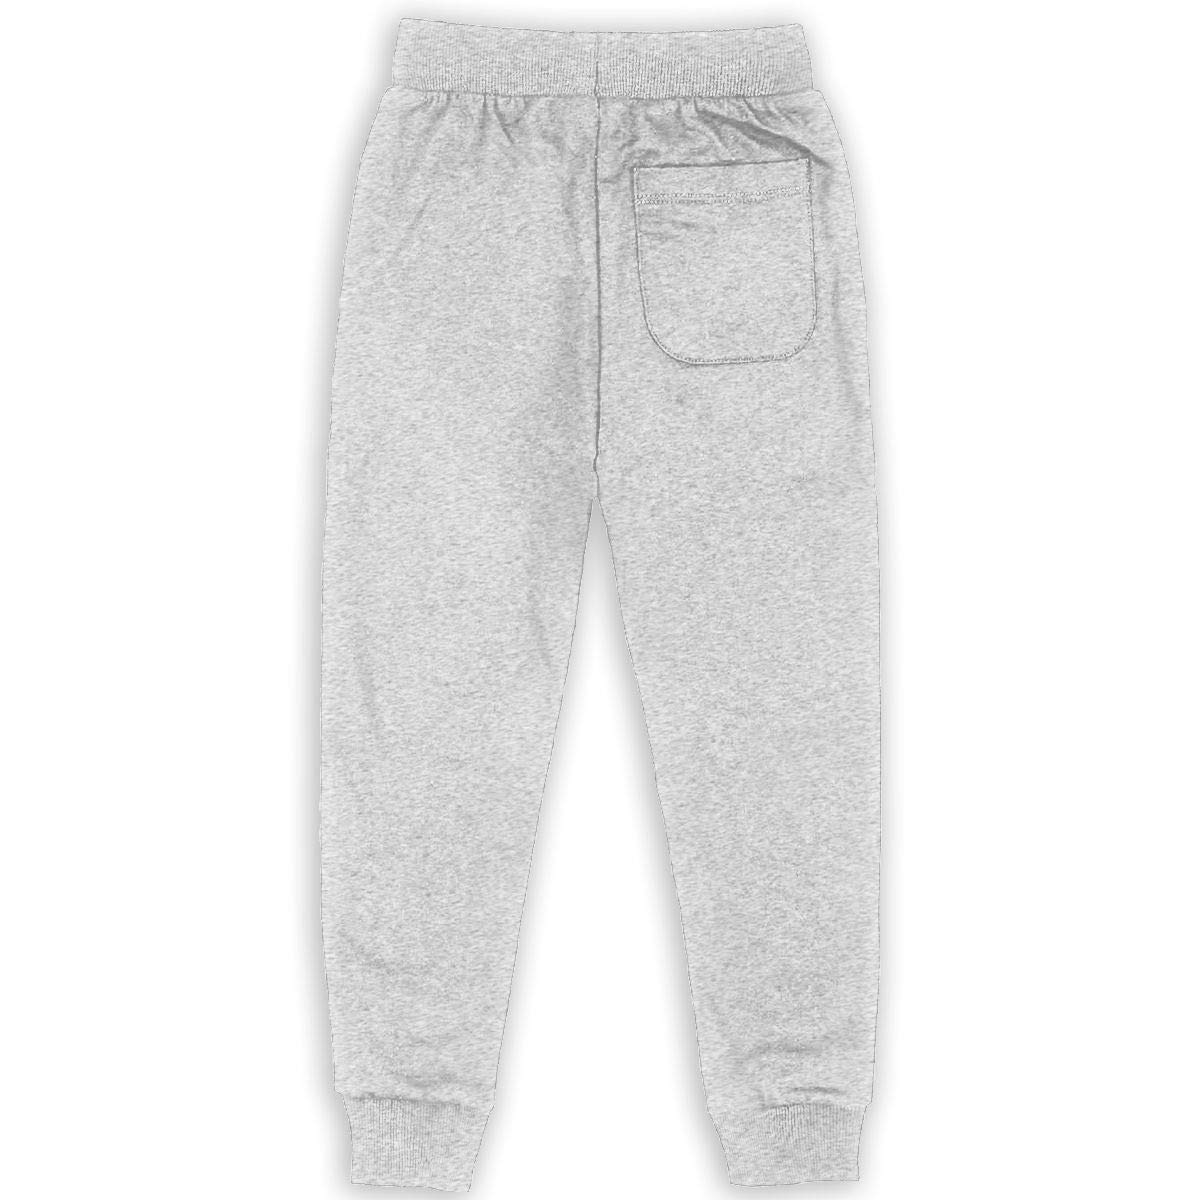 Pug in Headphones Boys Cotton Sweatpants Comfortable Joggers Pants Active Pants